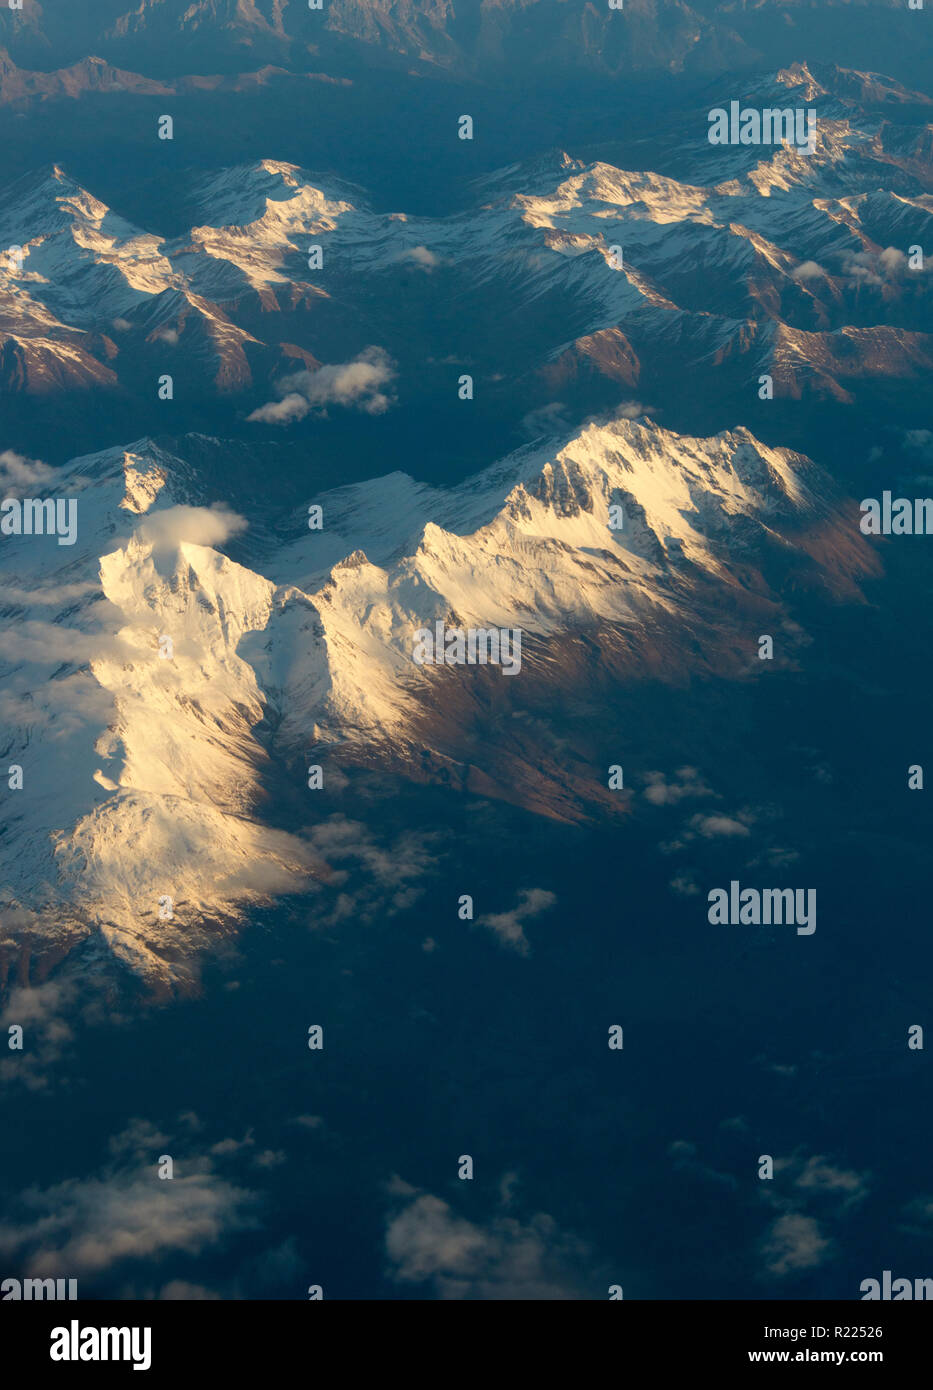 Arial photograph over Swiss Alps at daybreak - Stock Image